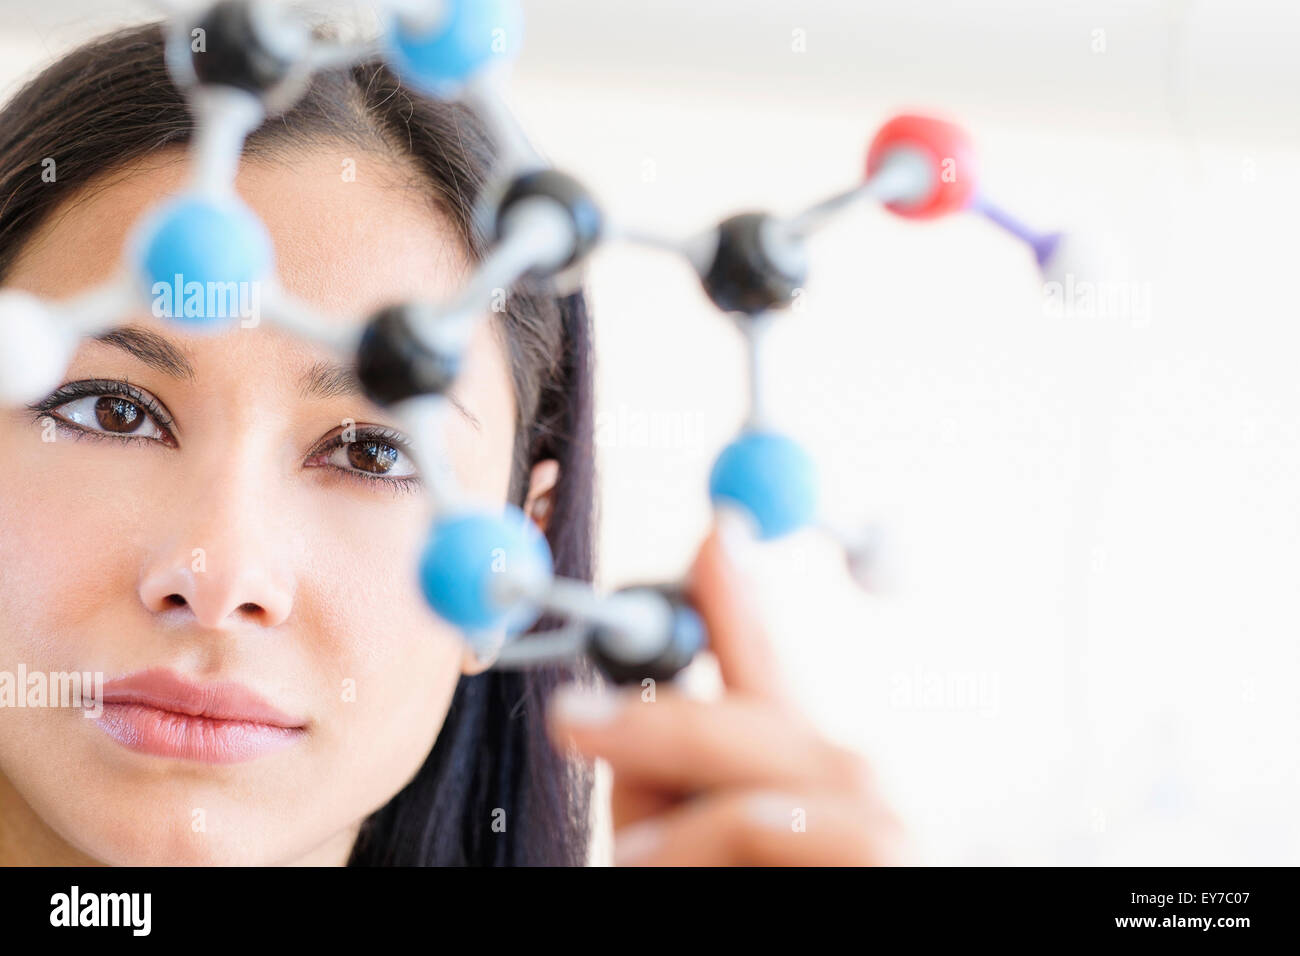 Woman working in laboratory - Stock Image